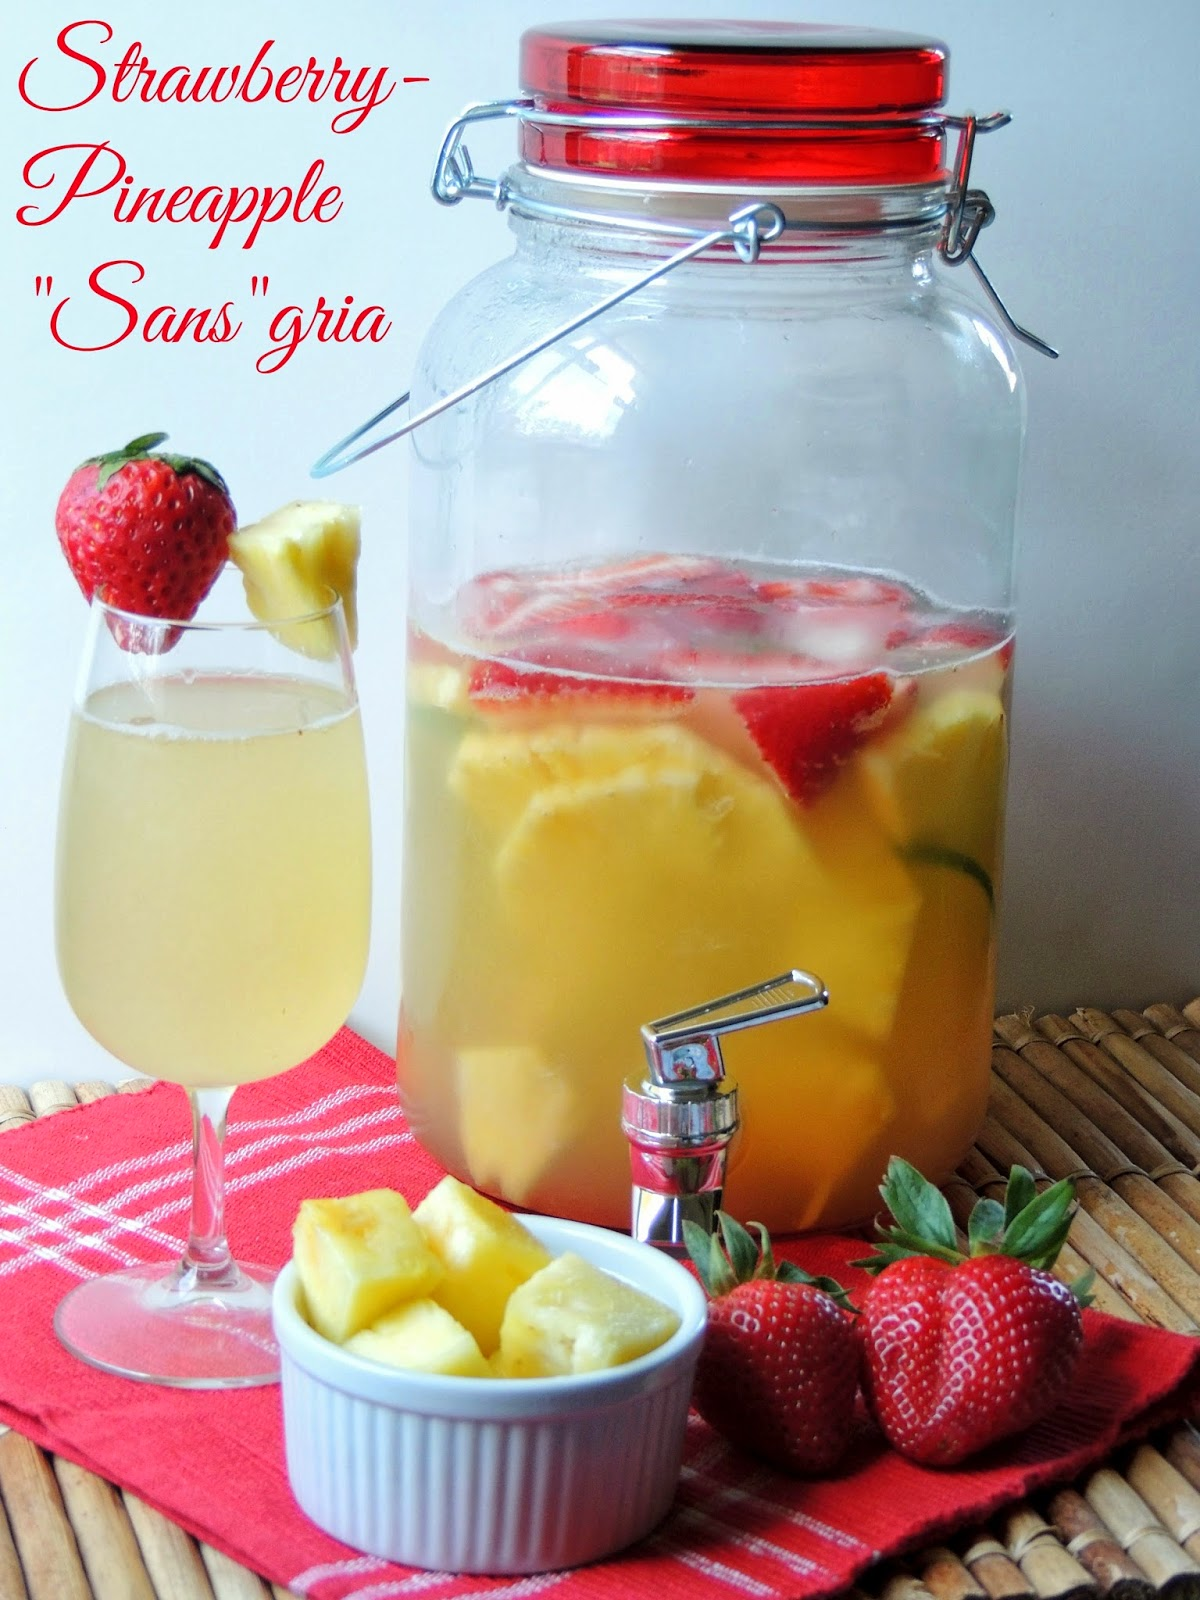 Strawberry Pineapple sansgria